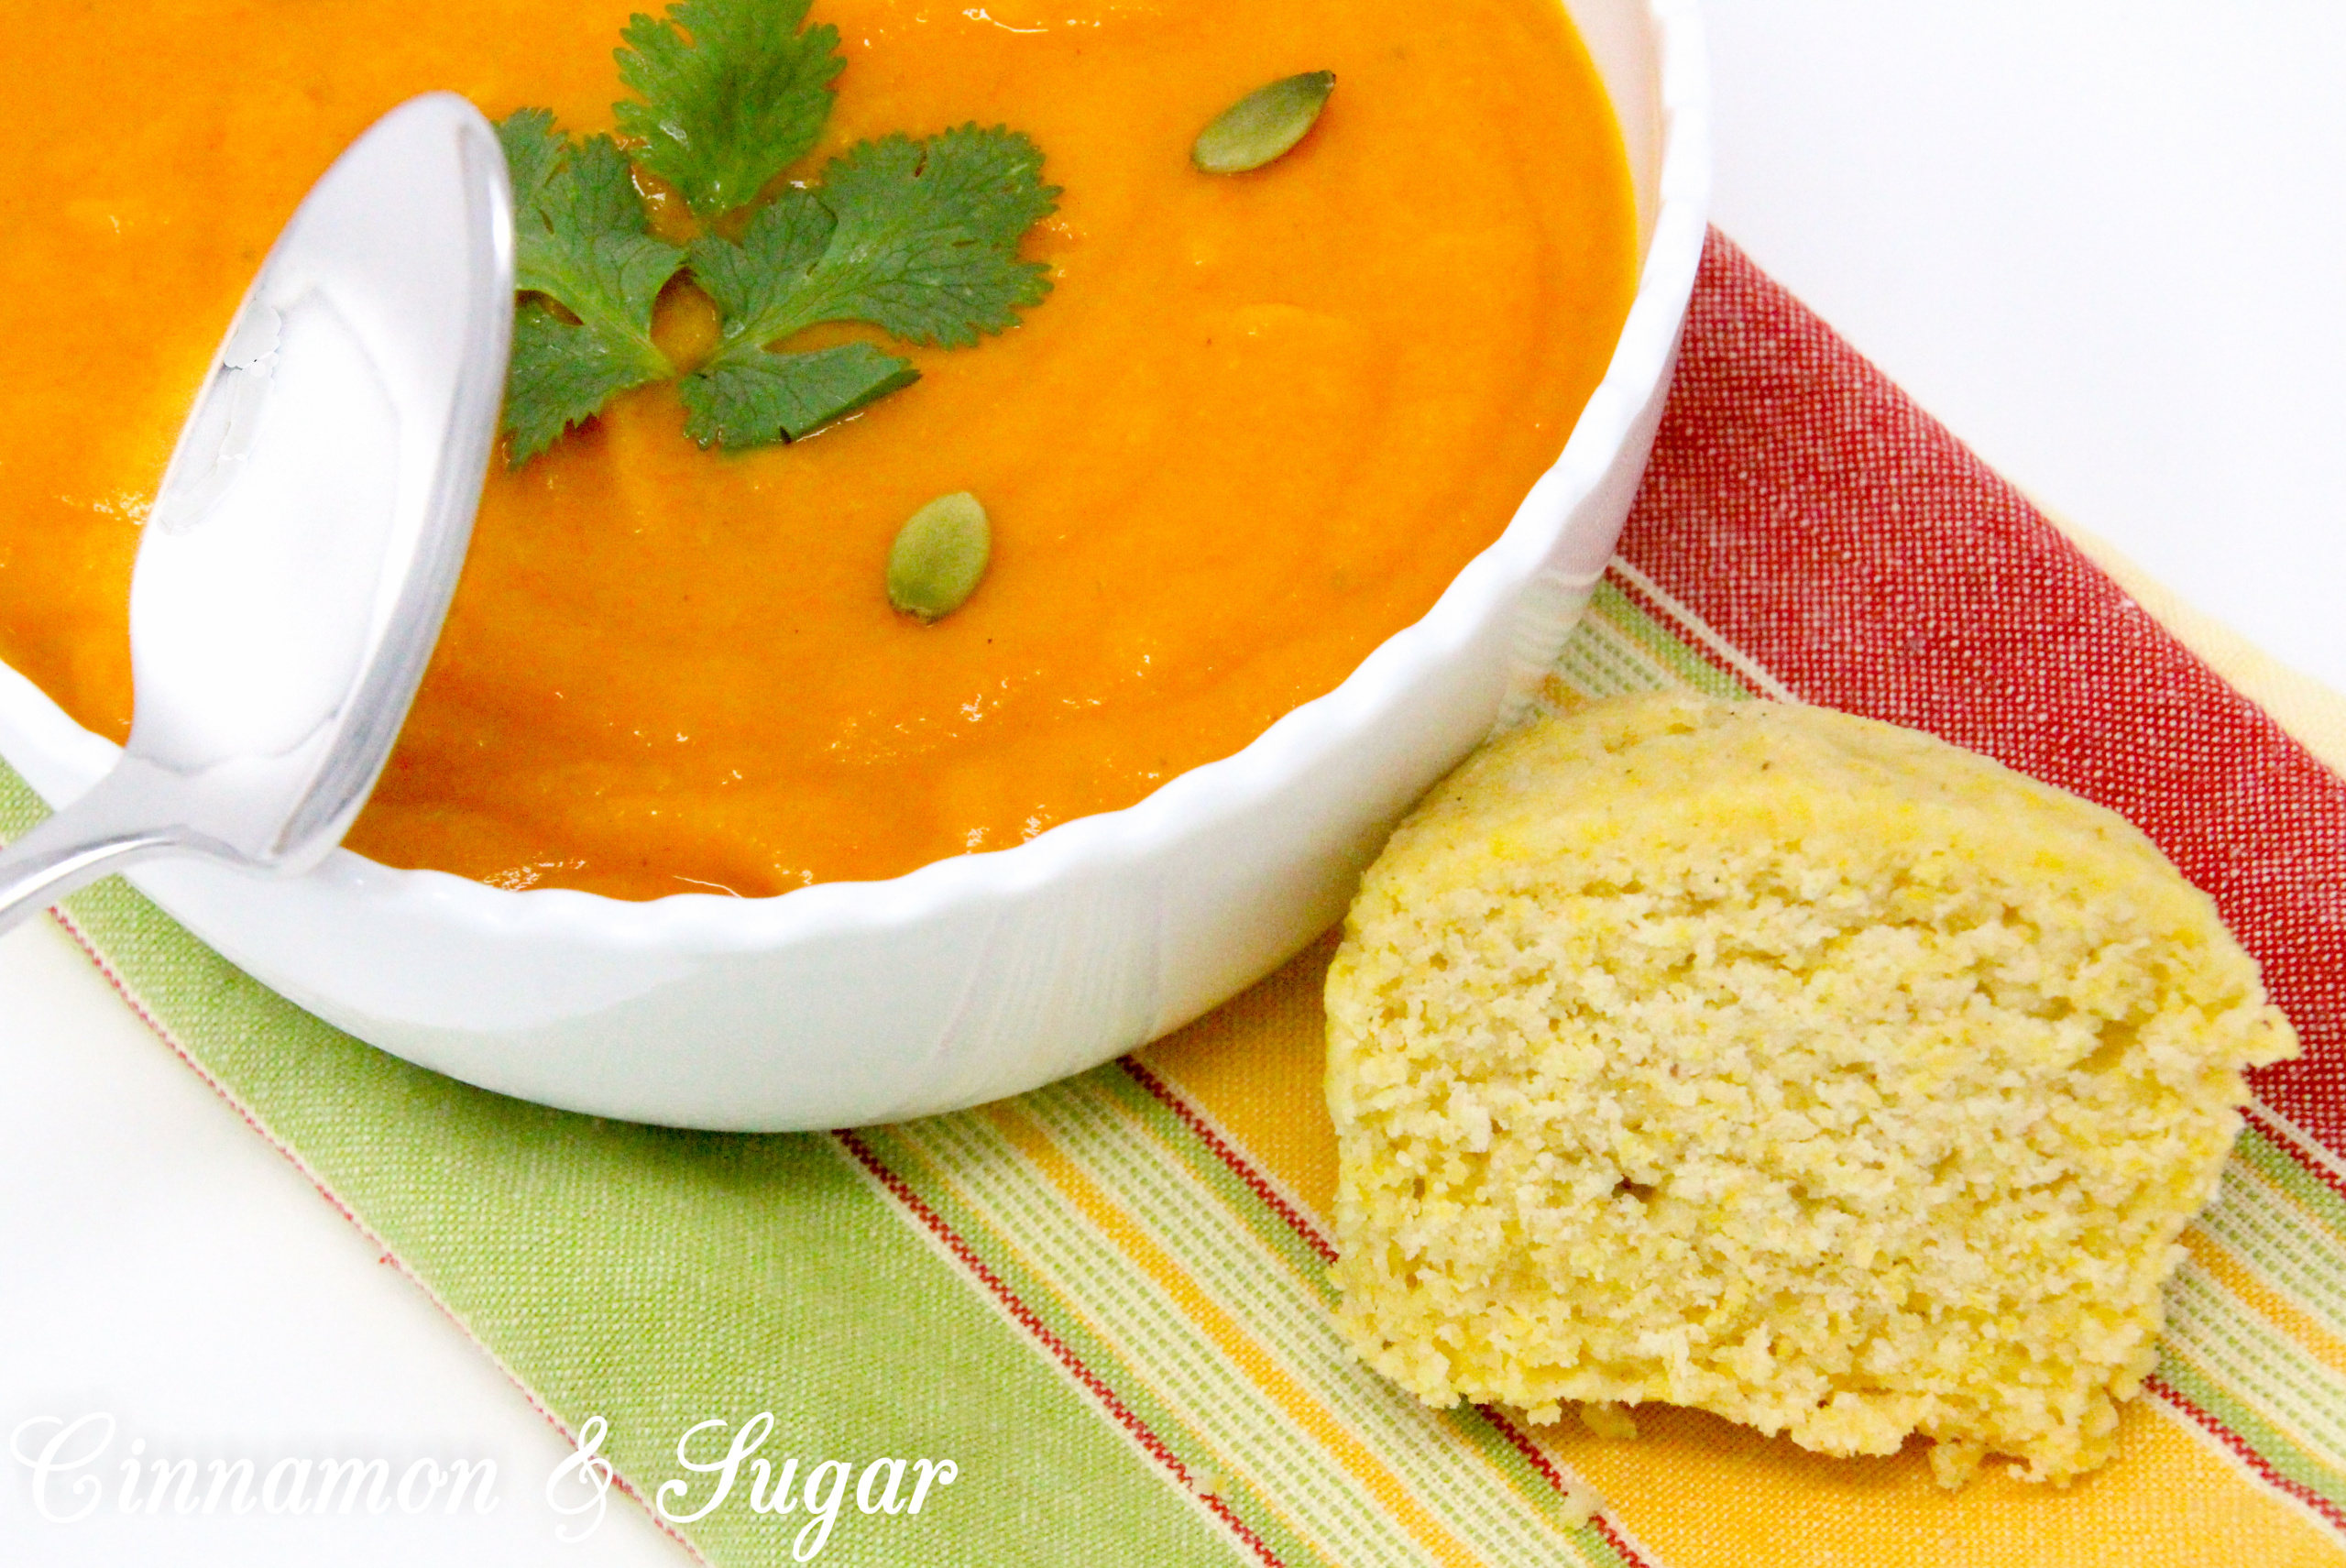 Combining warming spices and the rich-colored hue of sweet potatoes, Curried Sweet Potato Soup is a comforting and nourishing dish. Recipe shared with permission granted by Maureen Klovers, author of OF MASQUES AND MURDER.